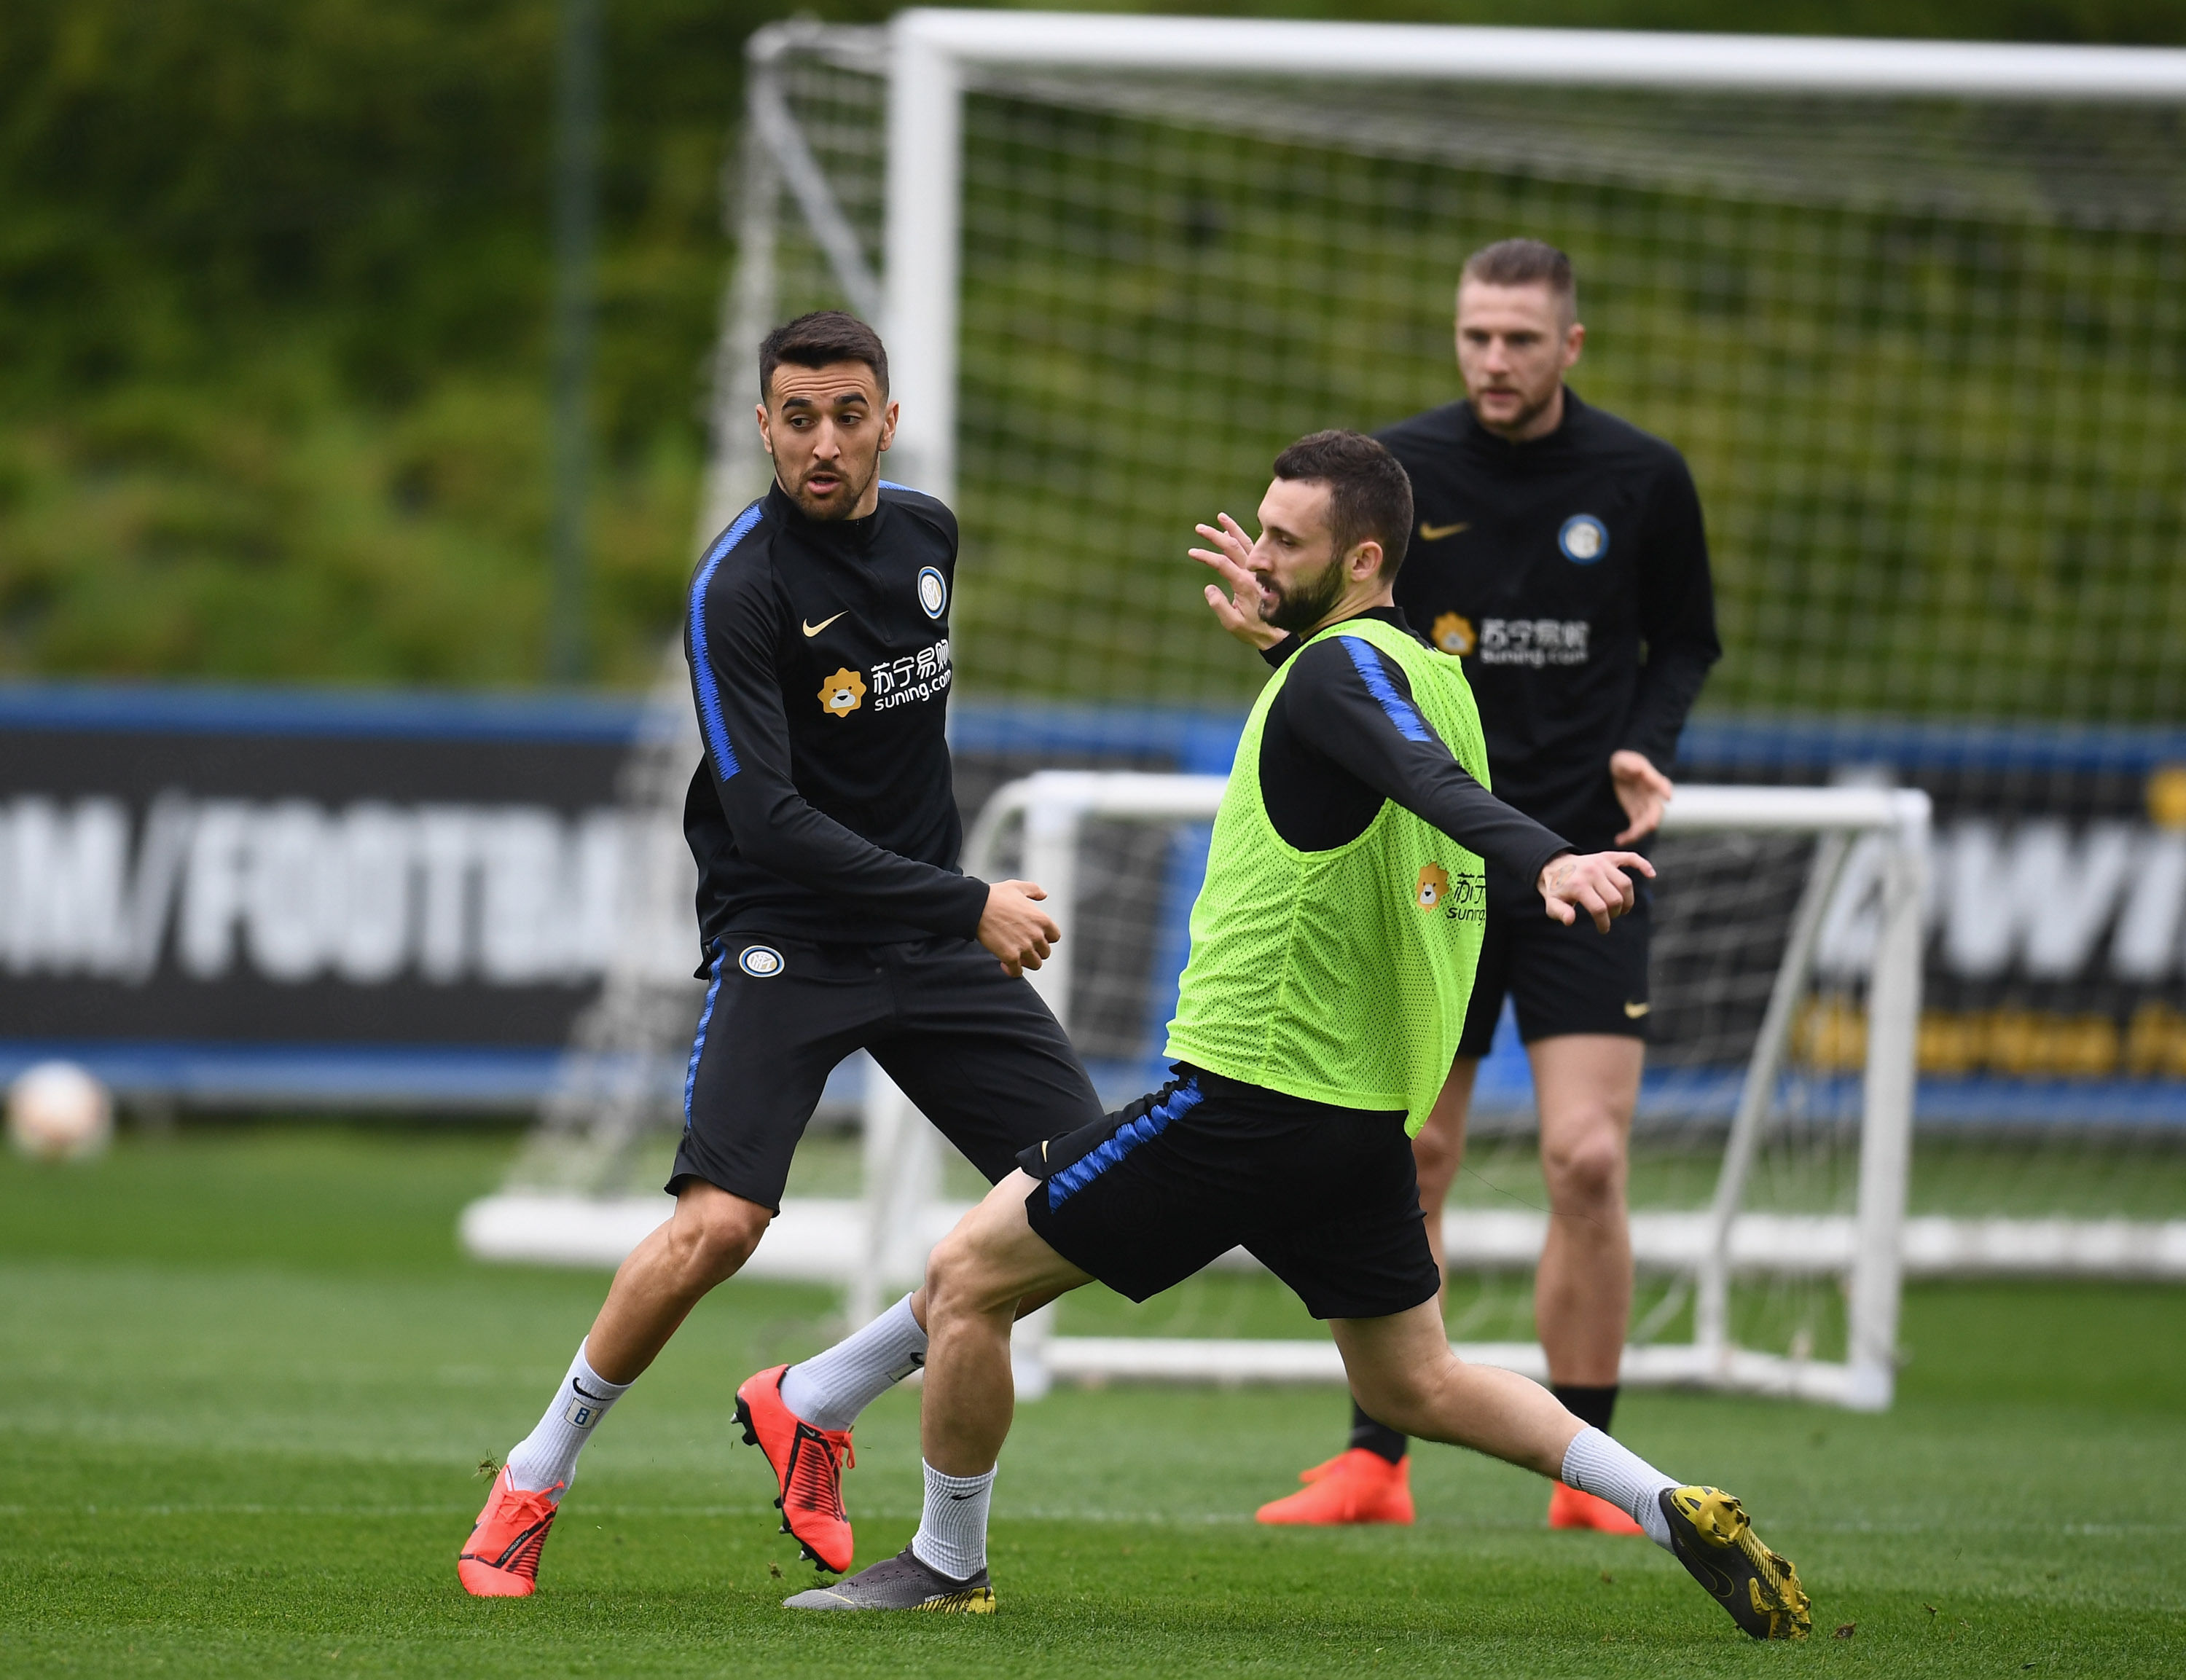 Tactical work and a practice match as Inter vs. Juventus draws nearer